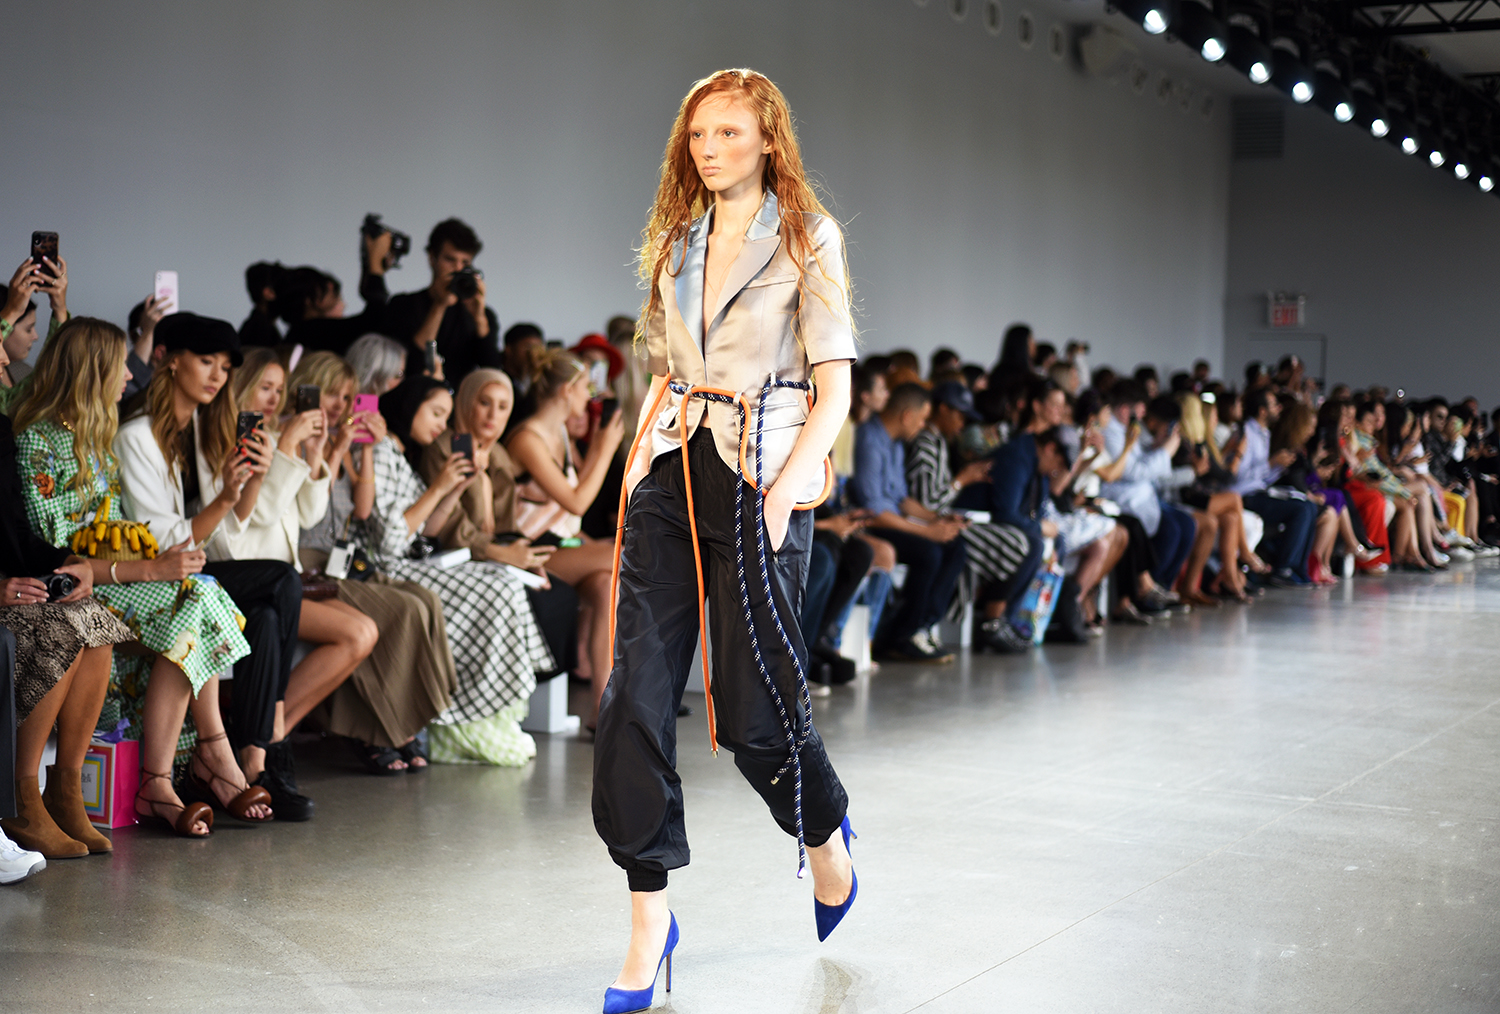 The Gong Show 2020.Stylecurated Nyfw 2019 Mark Gong S S 2020 Spring Studios